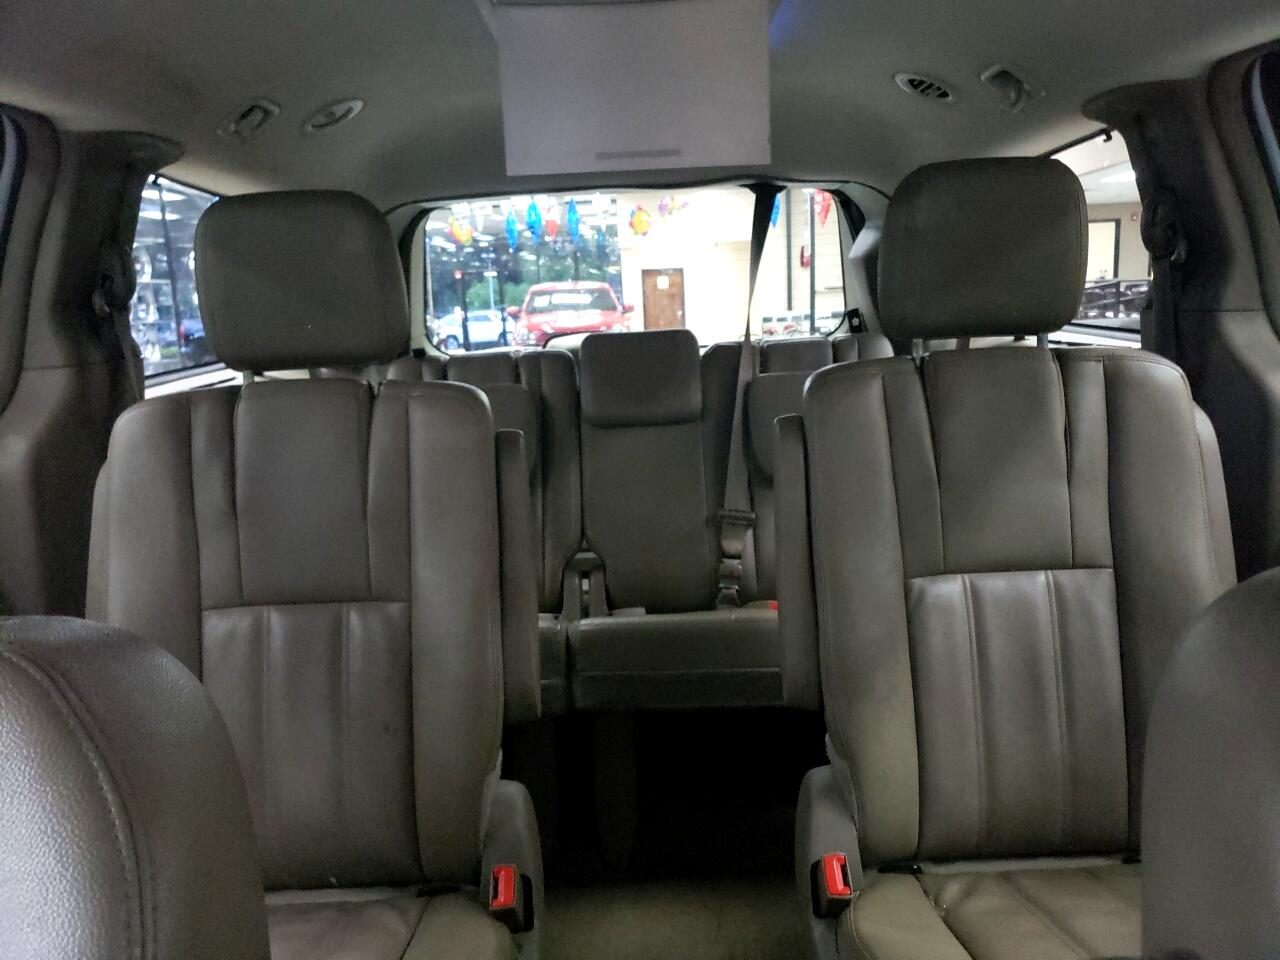 2014 Chrysler Town & Country 4dr Wgn Touring